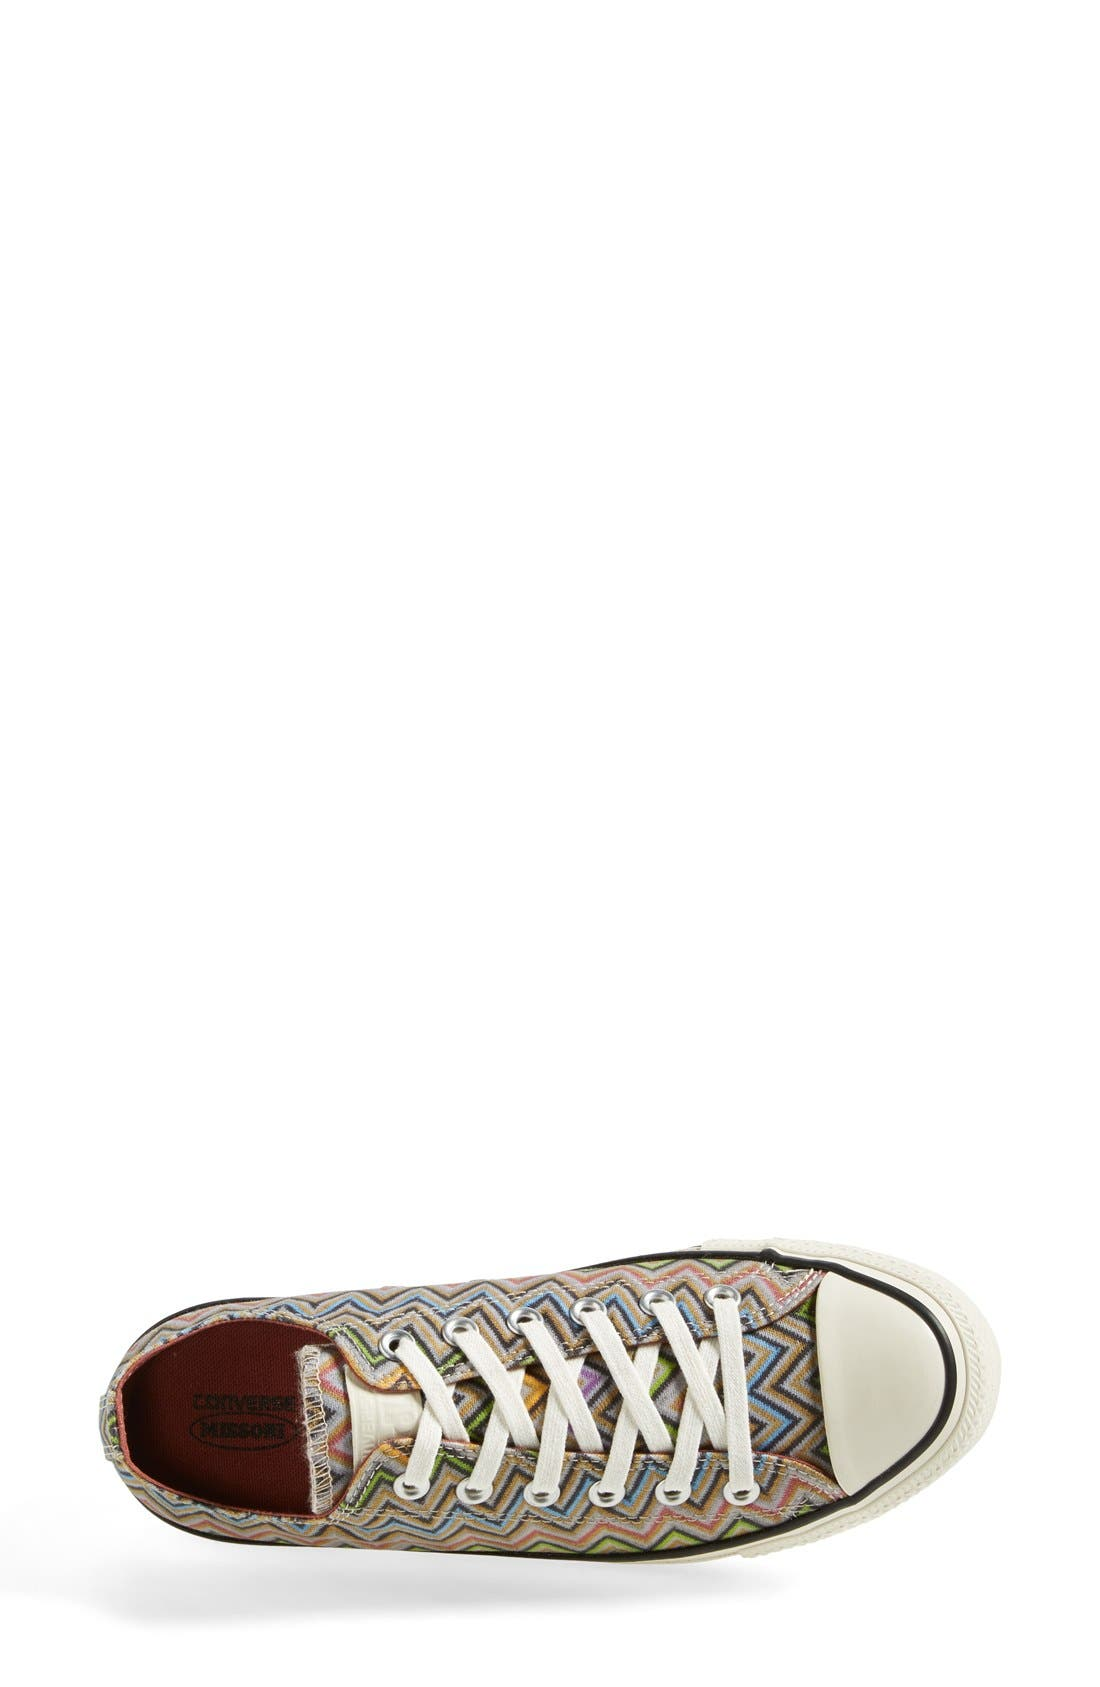 x Missoni Chuck Taylor<sup>®</sup> All Star<sup>®</sup> Low Sneaker,                             Alternate thumbnail 3, color,                             Lucky Stone/ Egret